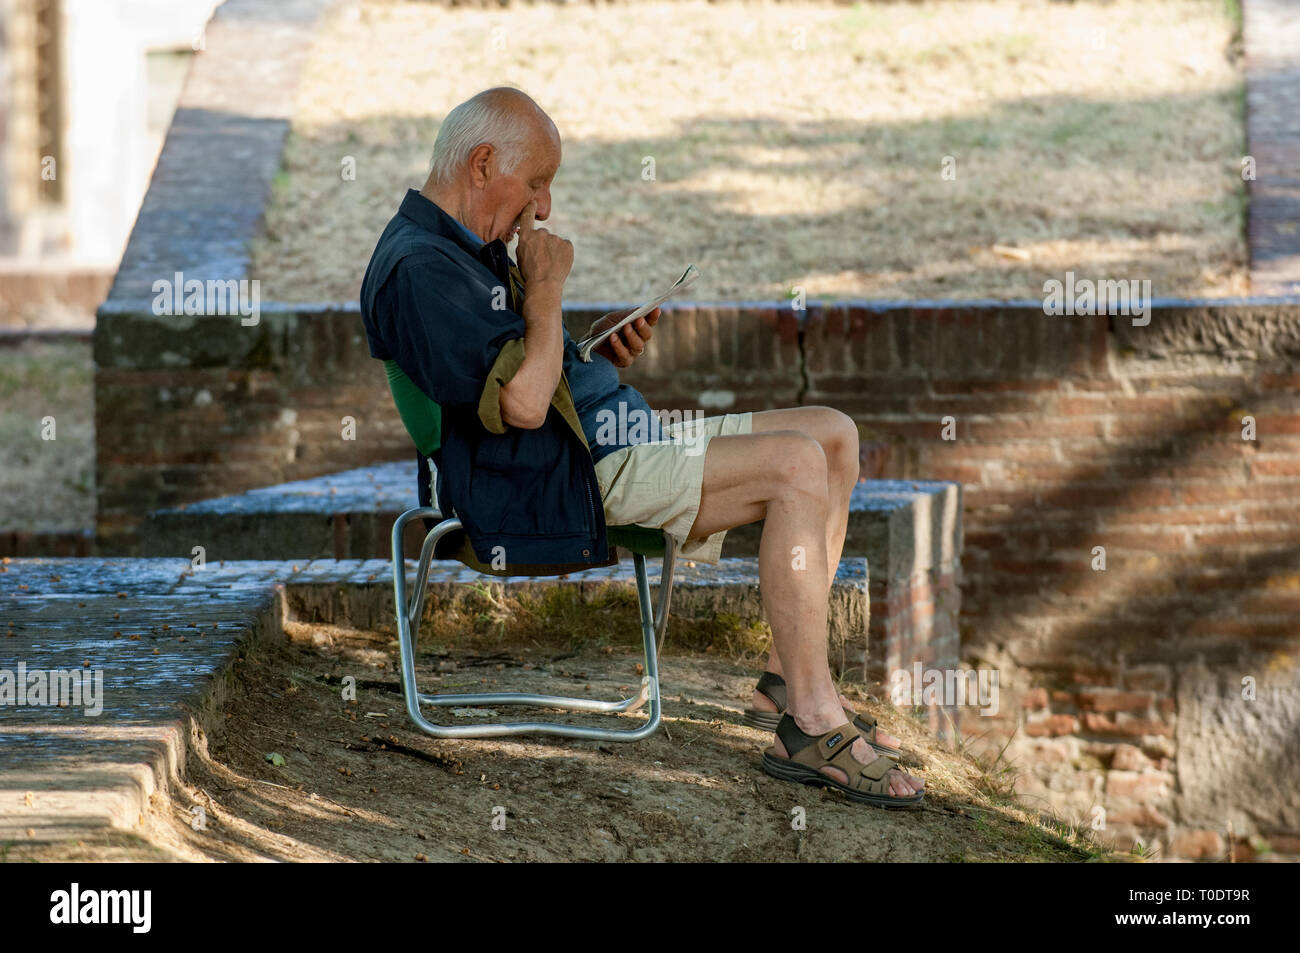 A man is sitting and reading in the park, Lucca, Italy. - Stock Image